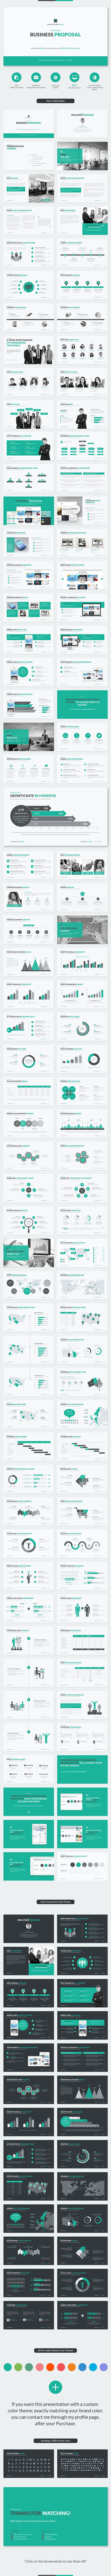 Business Proposal Keynote Template #design #slides Download: http://graphicriver.net/item/business-proposal-keynote-template/12656364?ref=ksioks